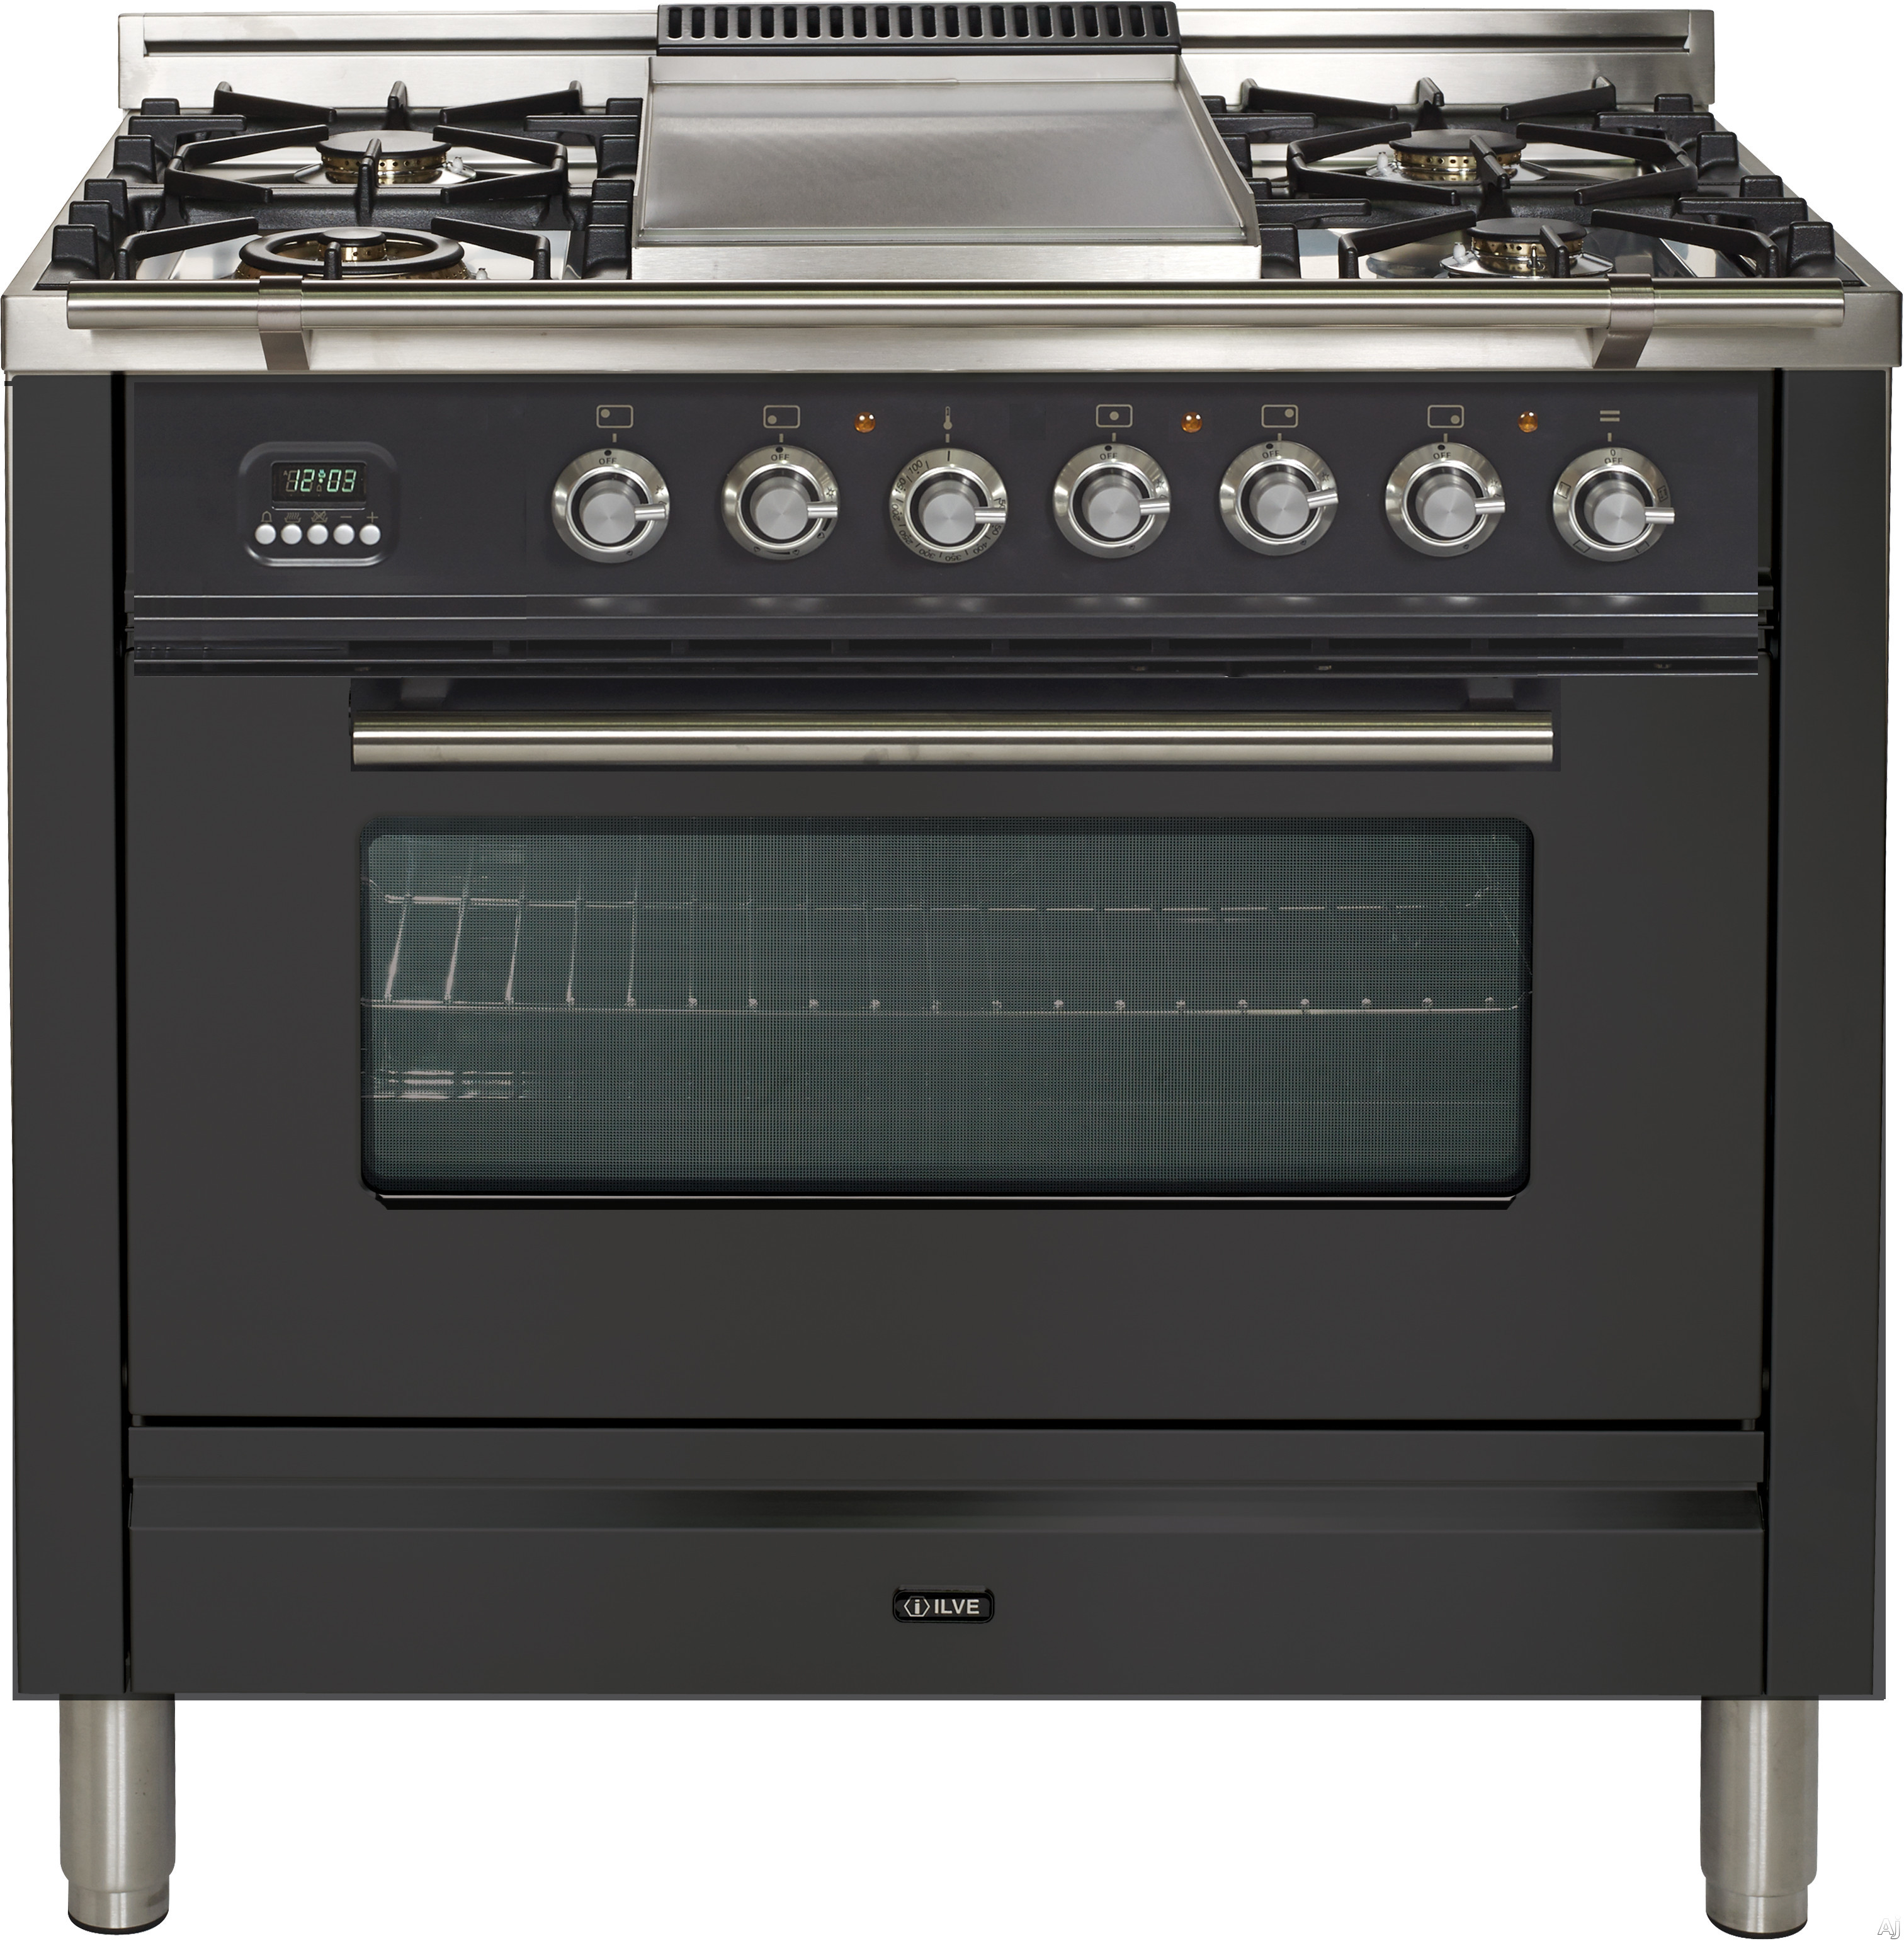 Ilve Proline Series UPDW90FDMPM 36 Inch Dual Fuel Double Range With Digital Clock and Timer, Warming Drawer, Cast Iron Grates, Convection, Rotisserie, Multi Function and Griddl: Matte Graphite UPDW90FDMPM